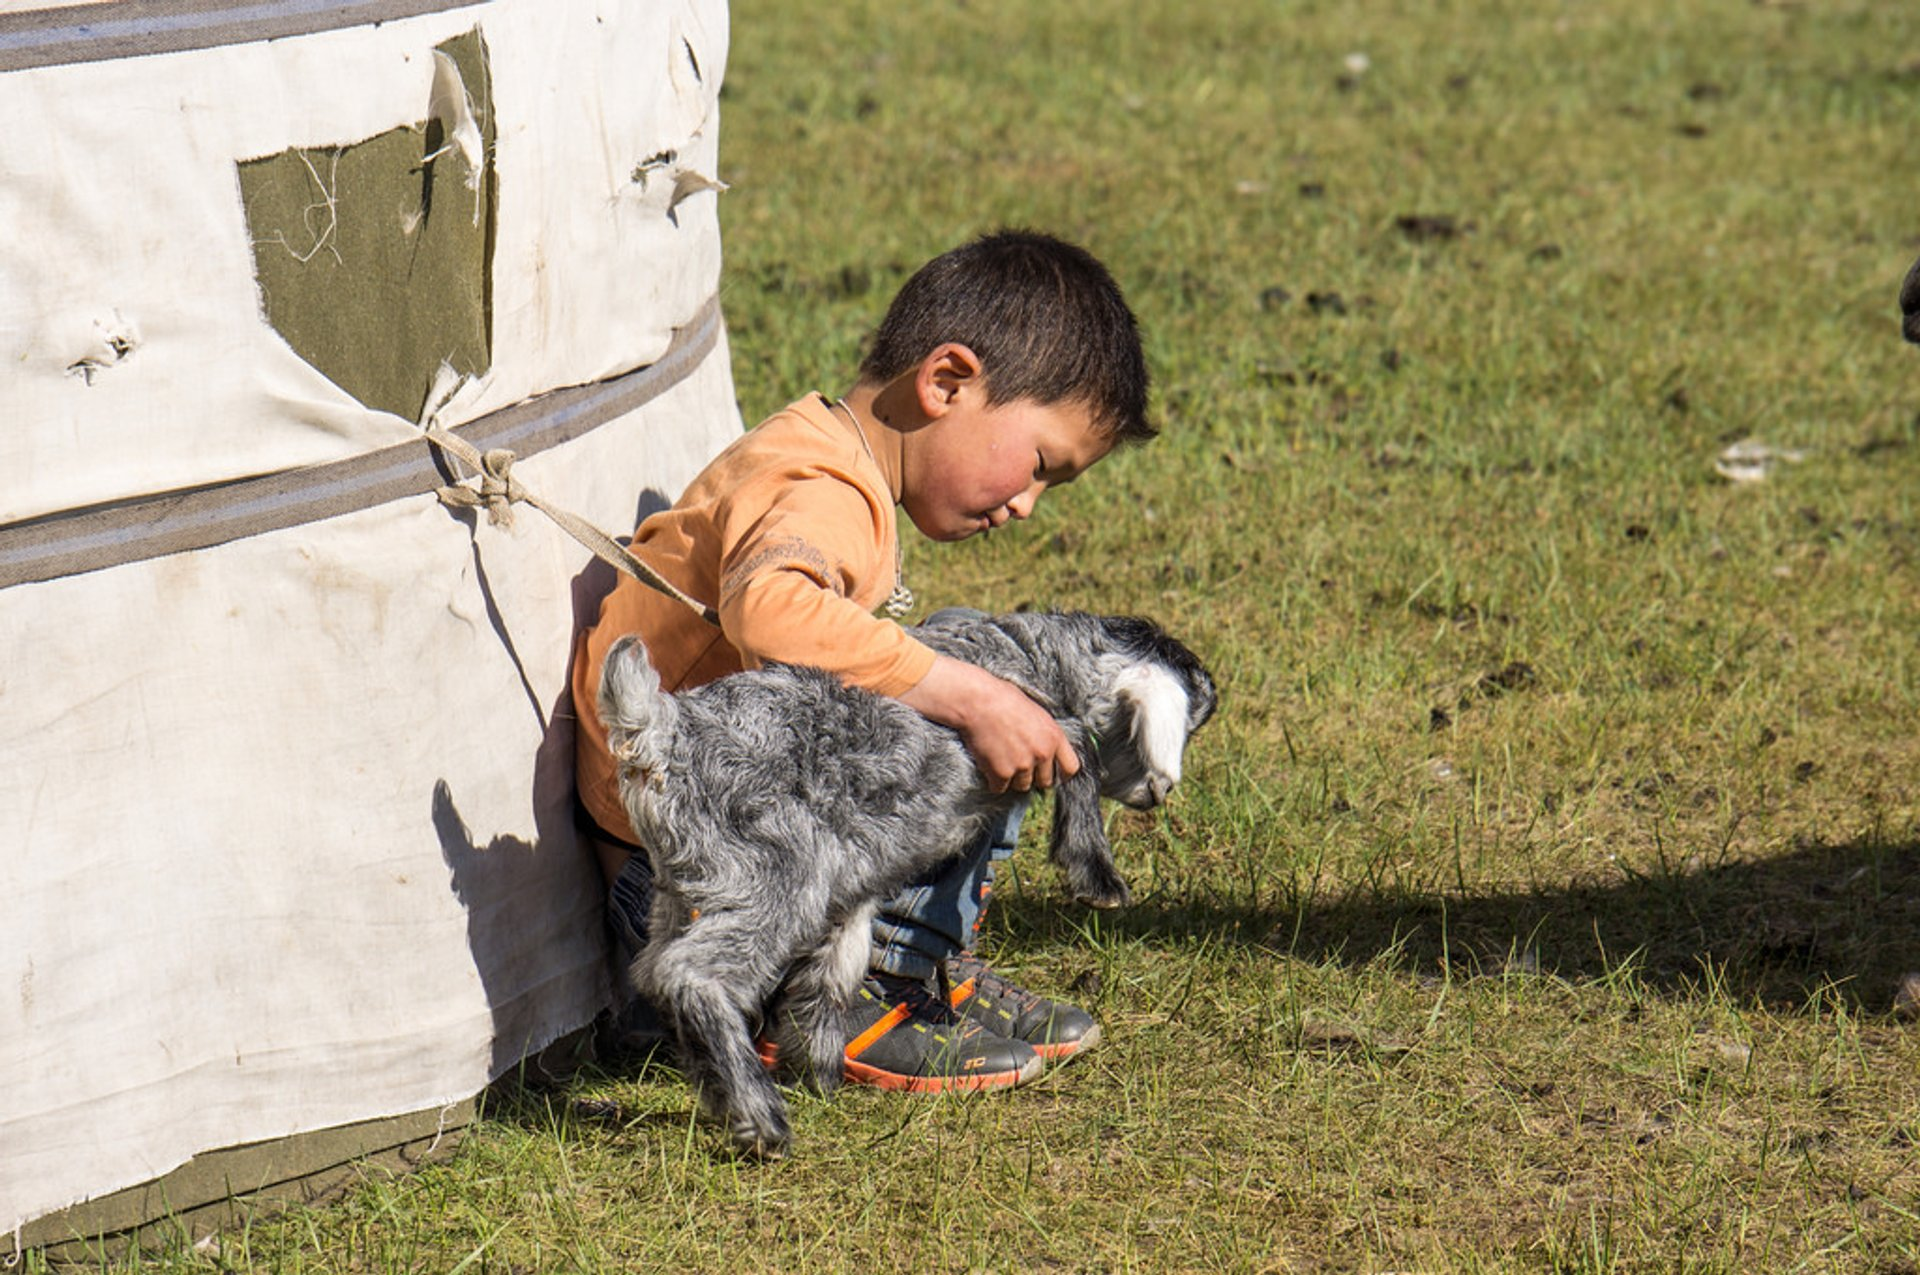 Nomad child with the baby goat 2019